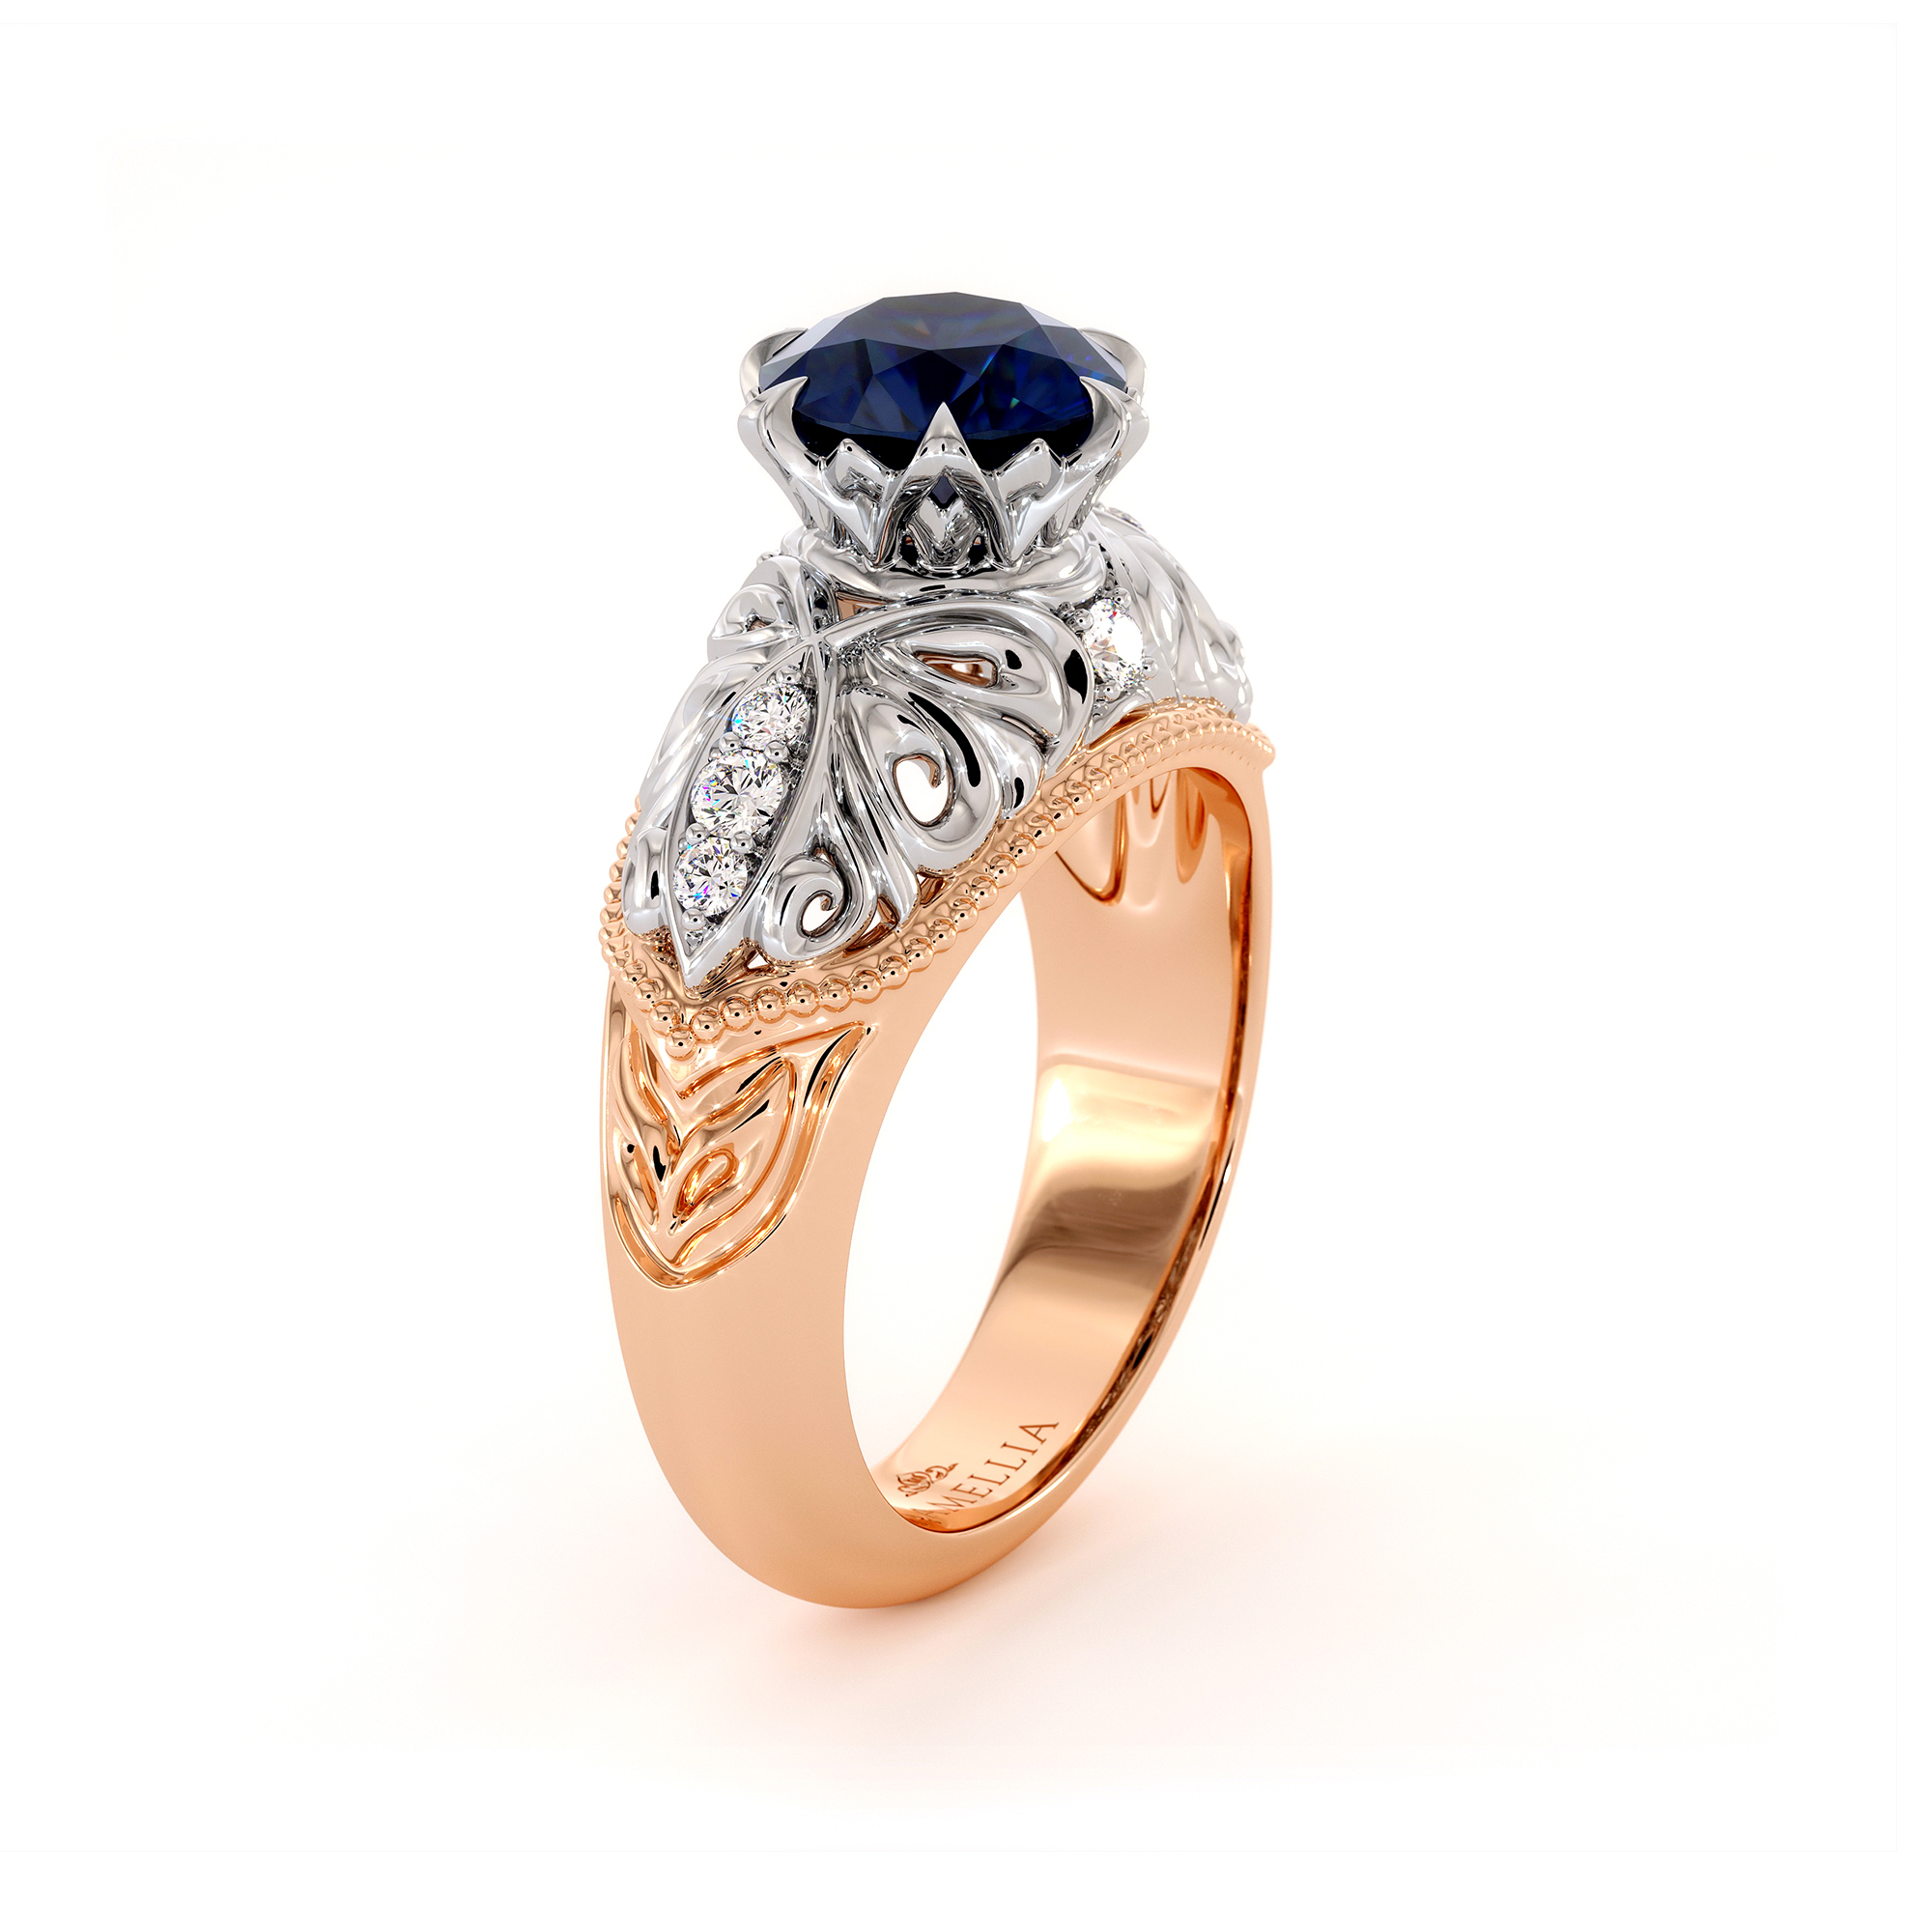 Handmade Blue Sapphire Ring 2 Toned Filigree Gold Engagement Ring Leaves Ring Particular Natural Diamonds Ring